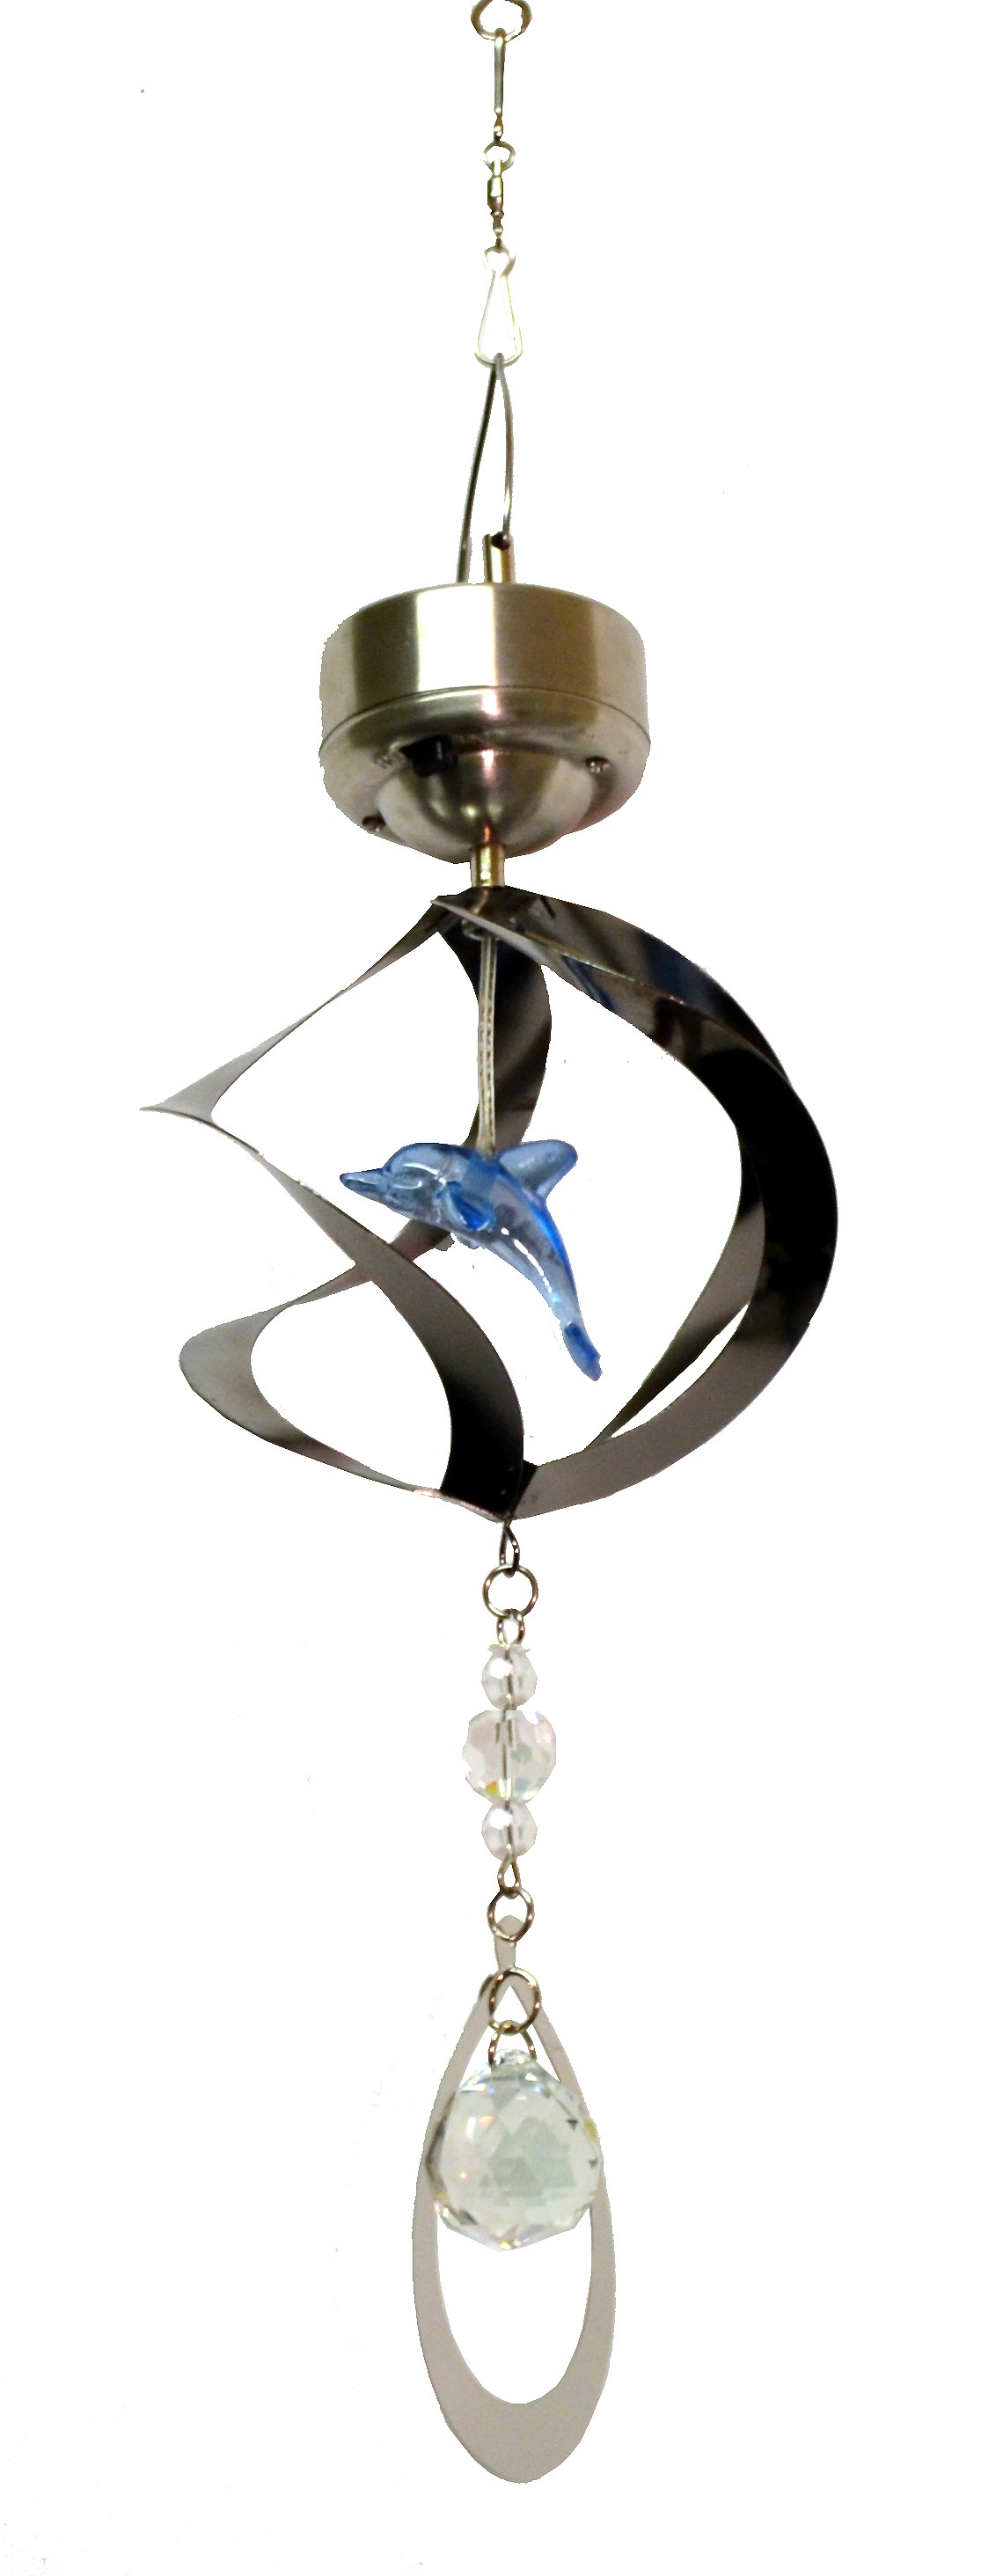 DOLPHIN-SOLAR HANGING METAL ROTATING WITH LED